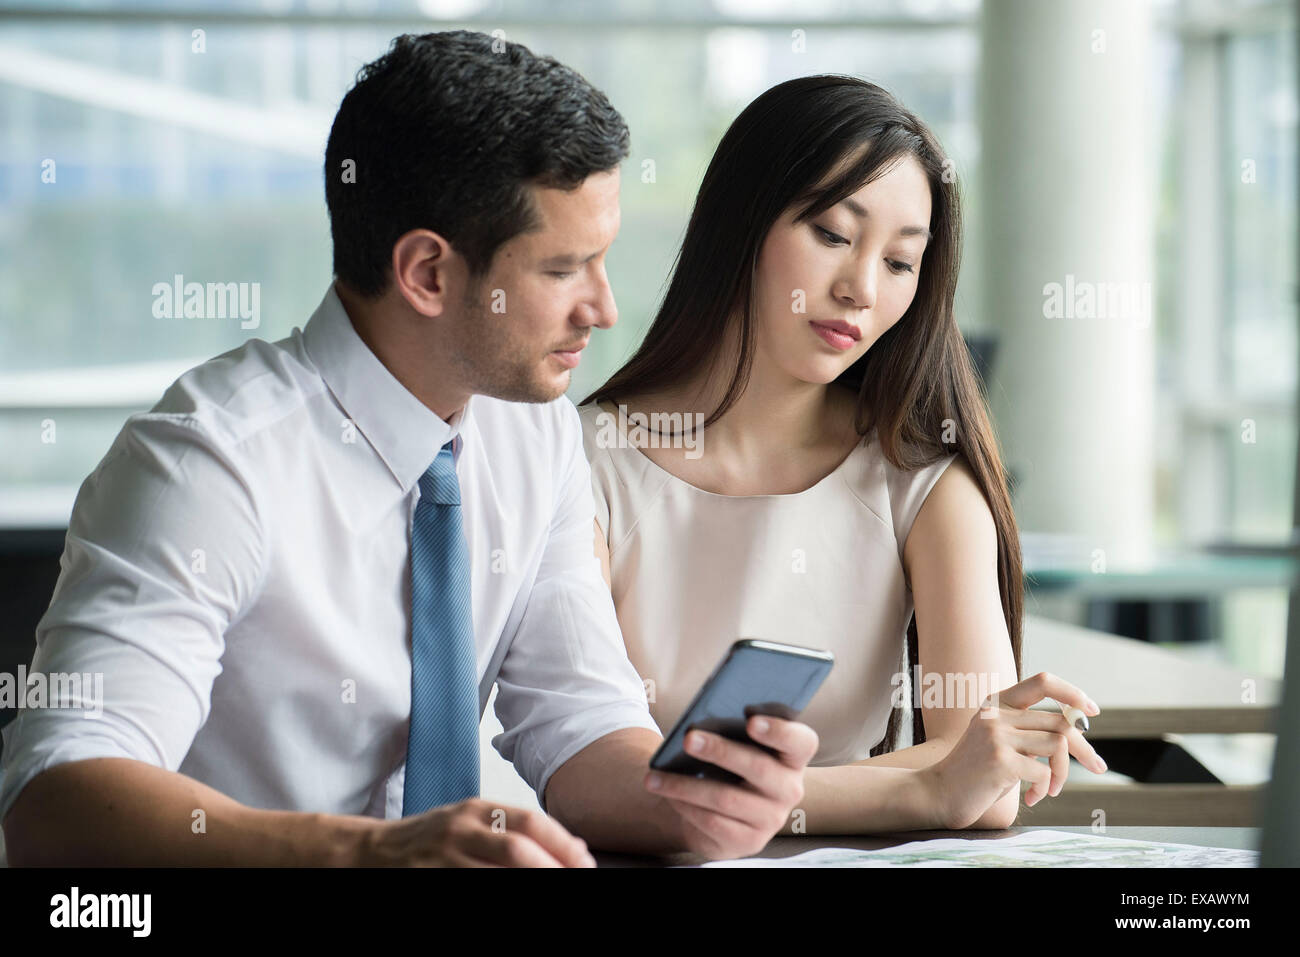 Business professionals working together Stock Photo